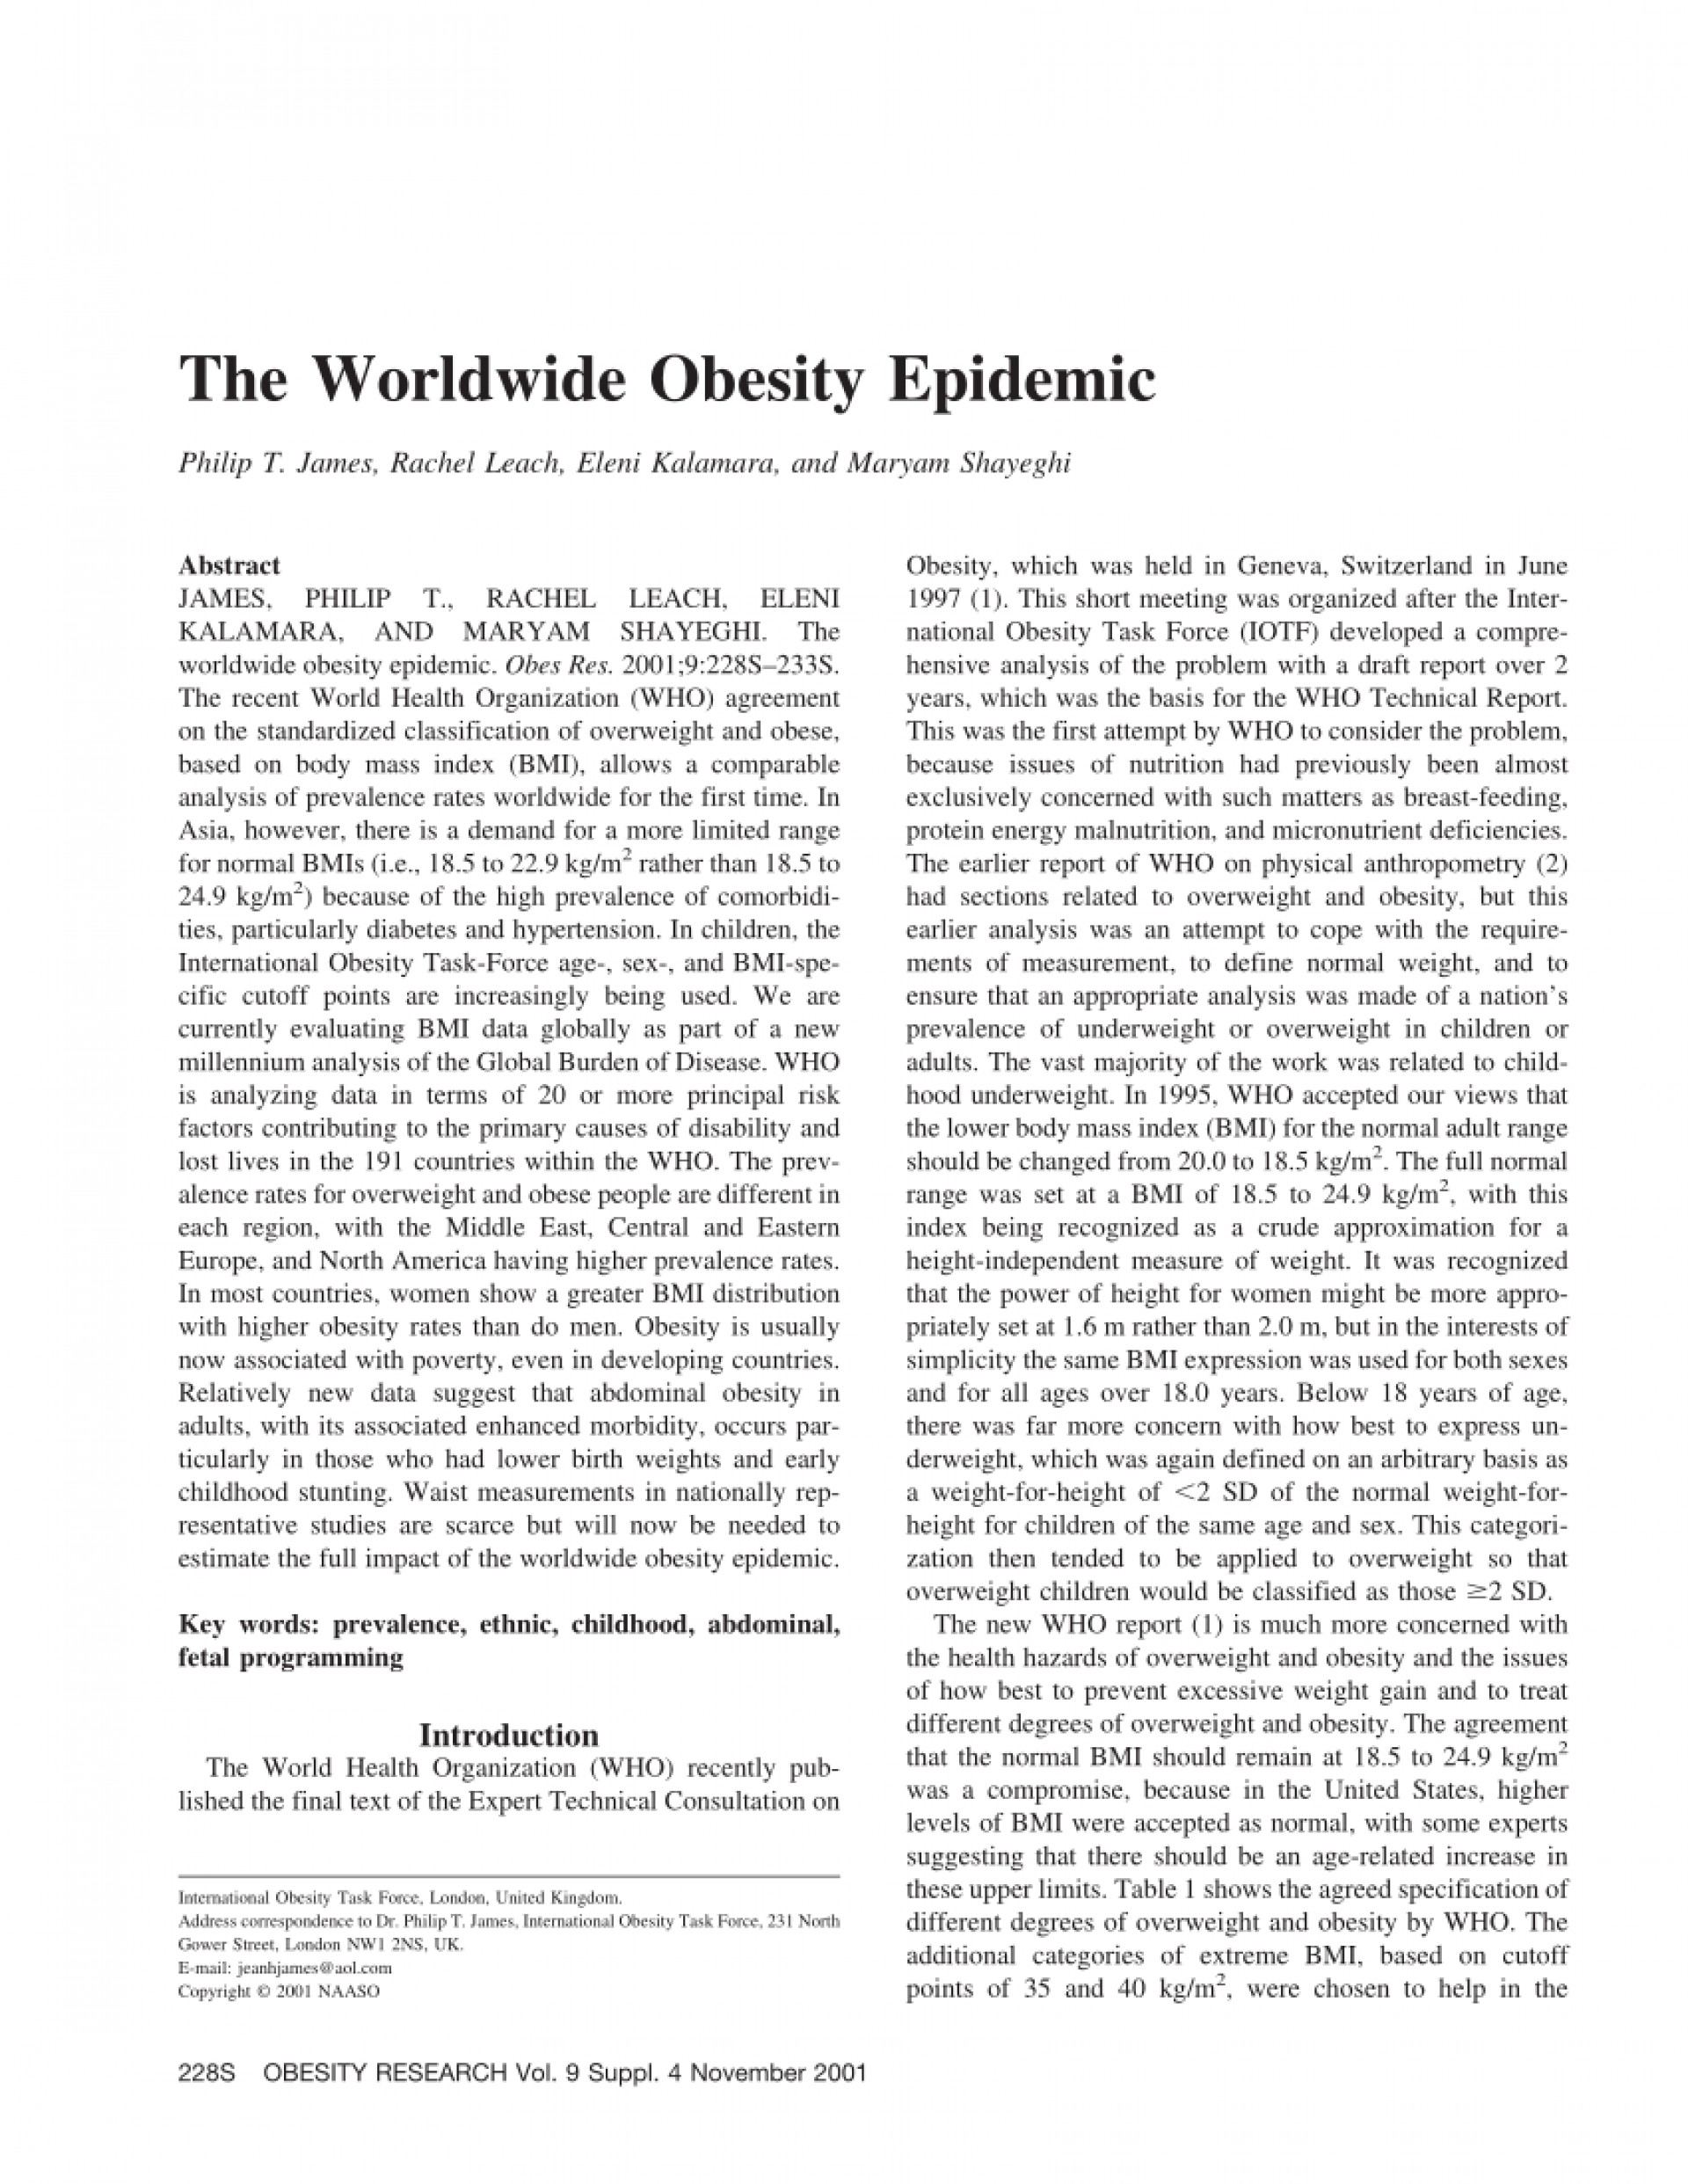 004 Research Paper Largepreview Obesity Epidemic Surprising Papers 1920